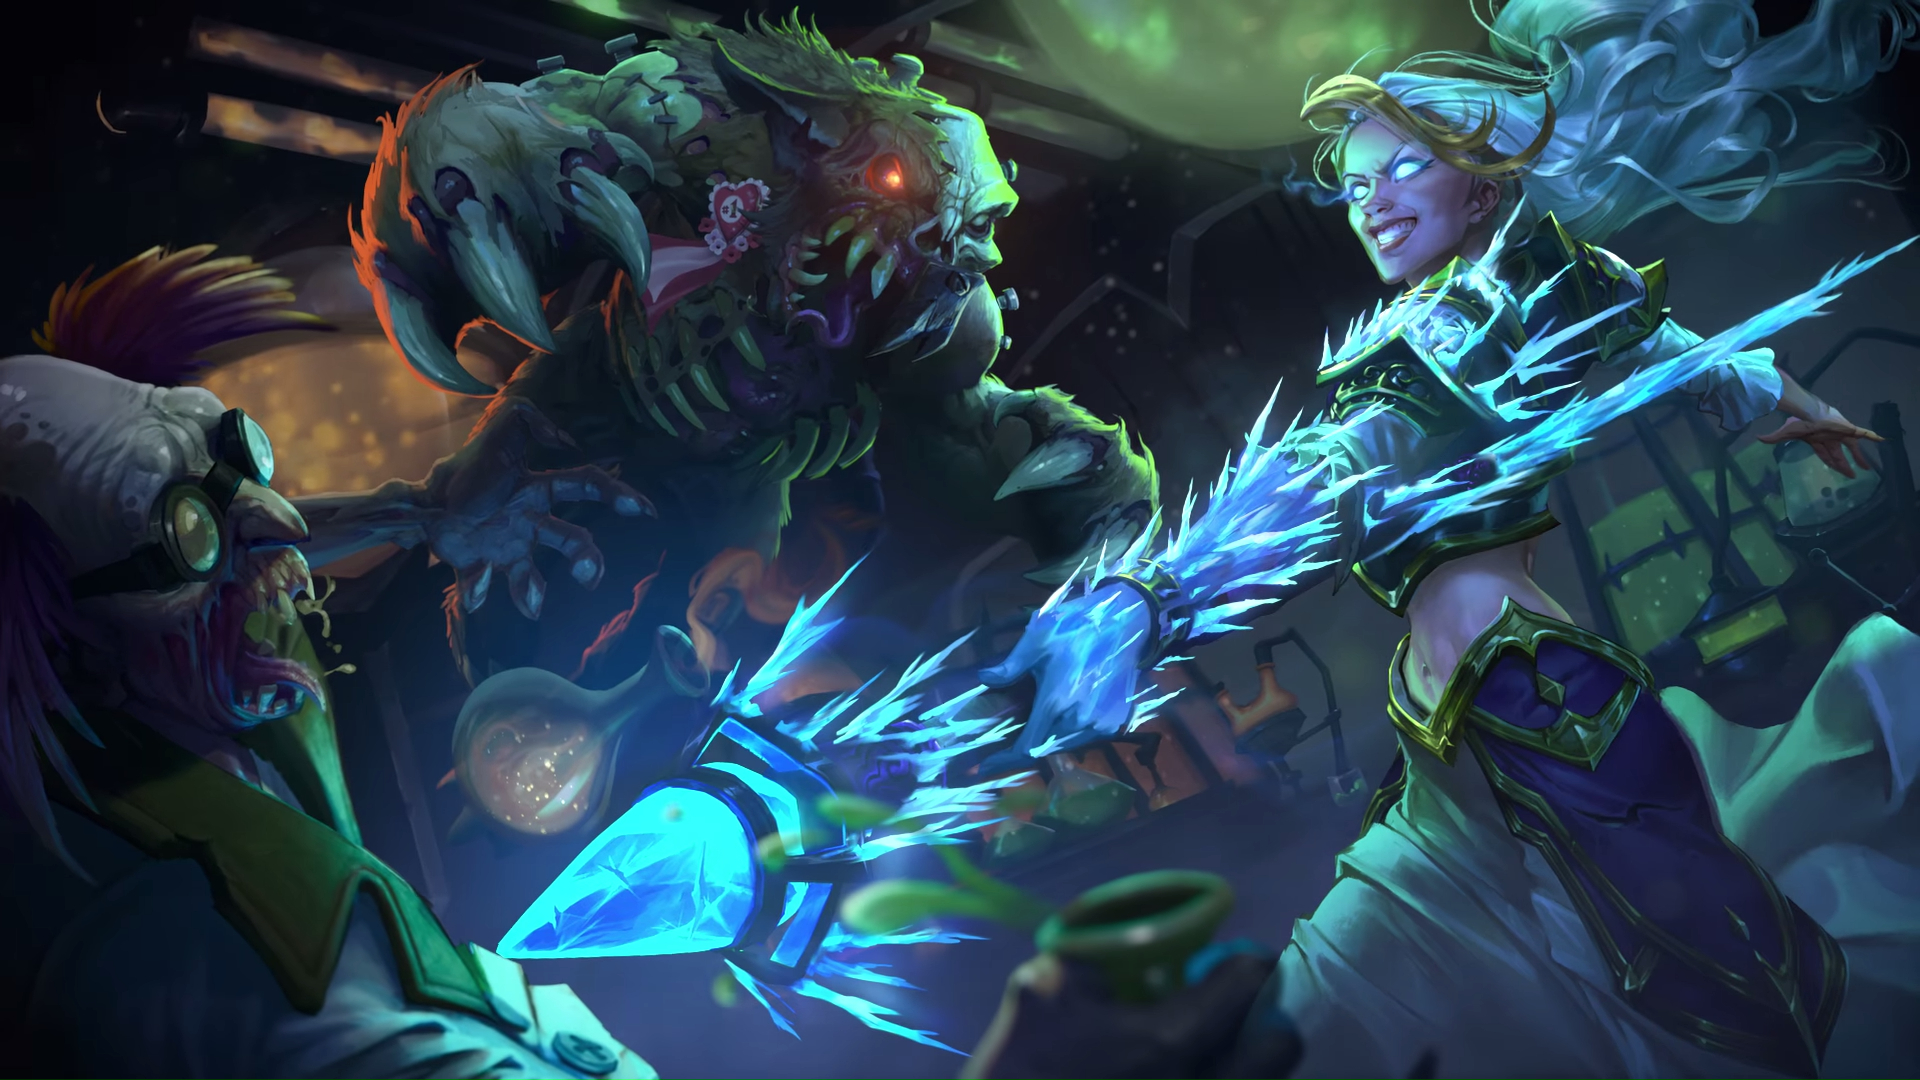 Knights Of The Frozen Throne Wallpaper: Hearthstone: Knights Of The Frozen Throne